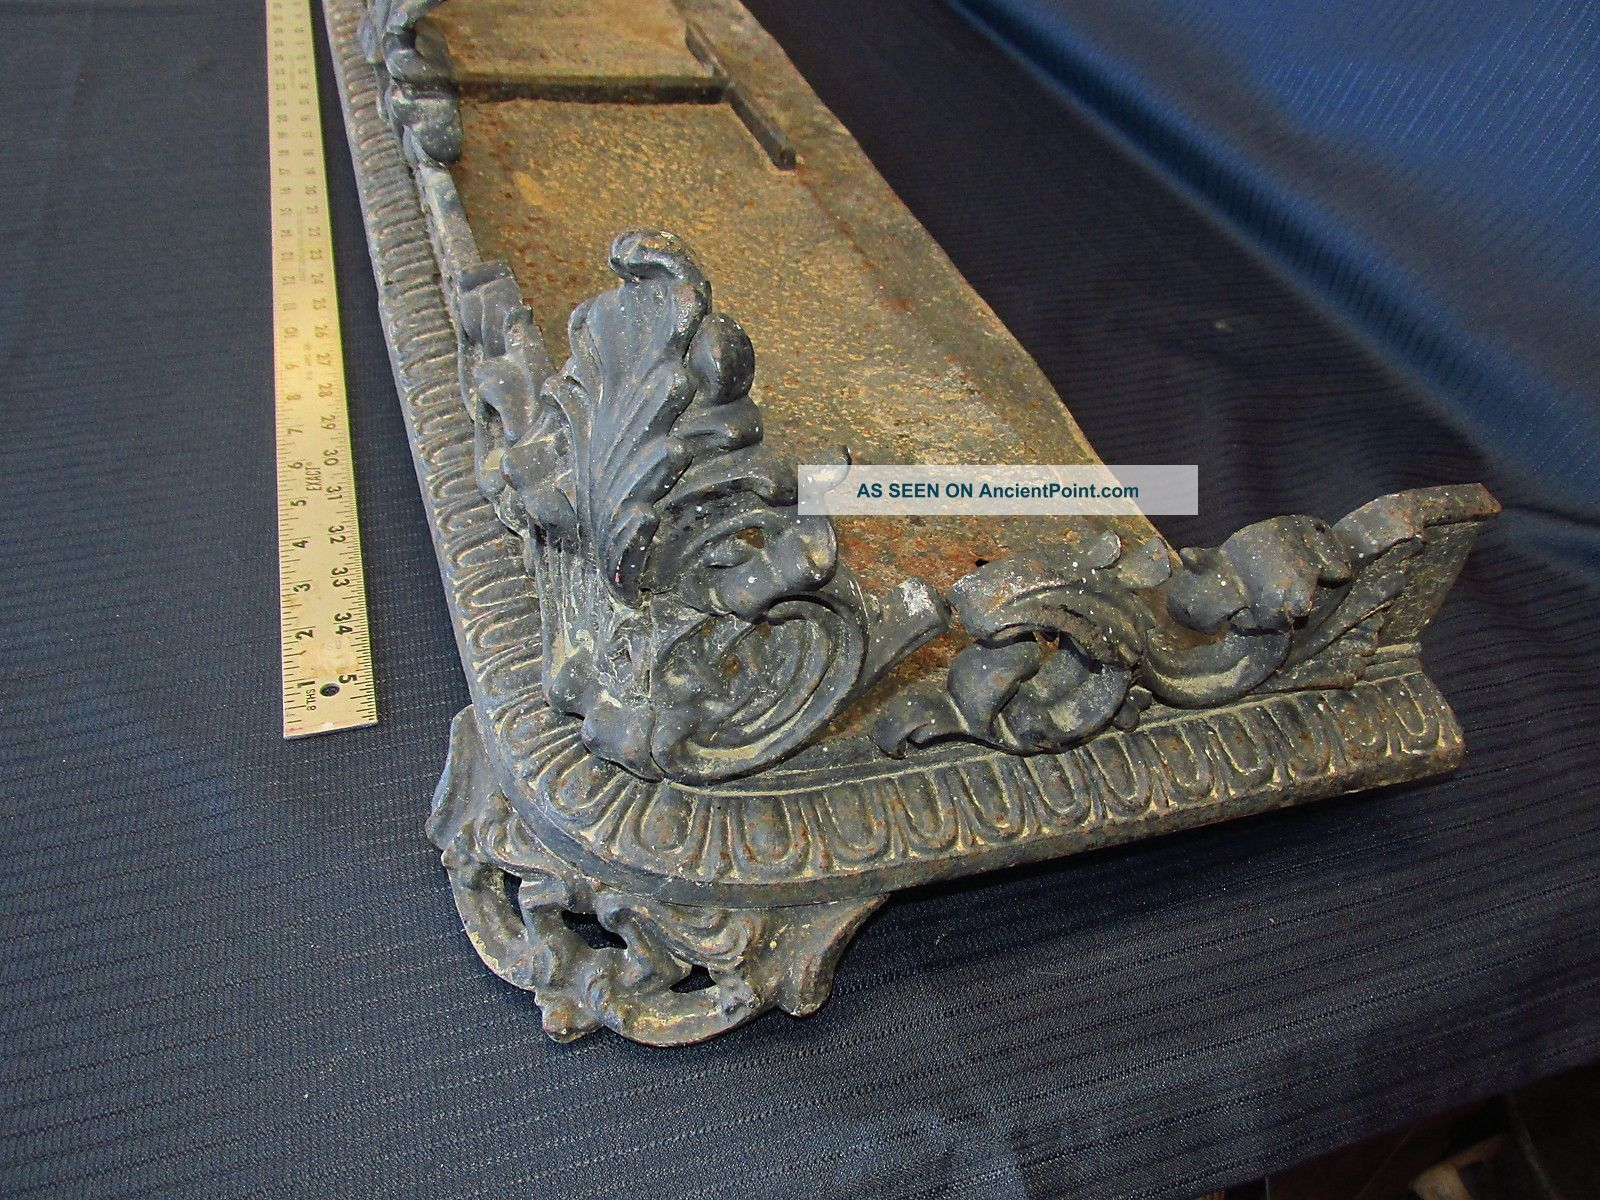 Antique Cast Iron Fireplace Fender Platform Victorn Mantle Surround Heating Photos and Information in AncientPoint